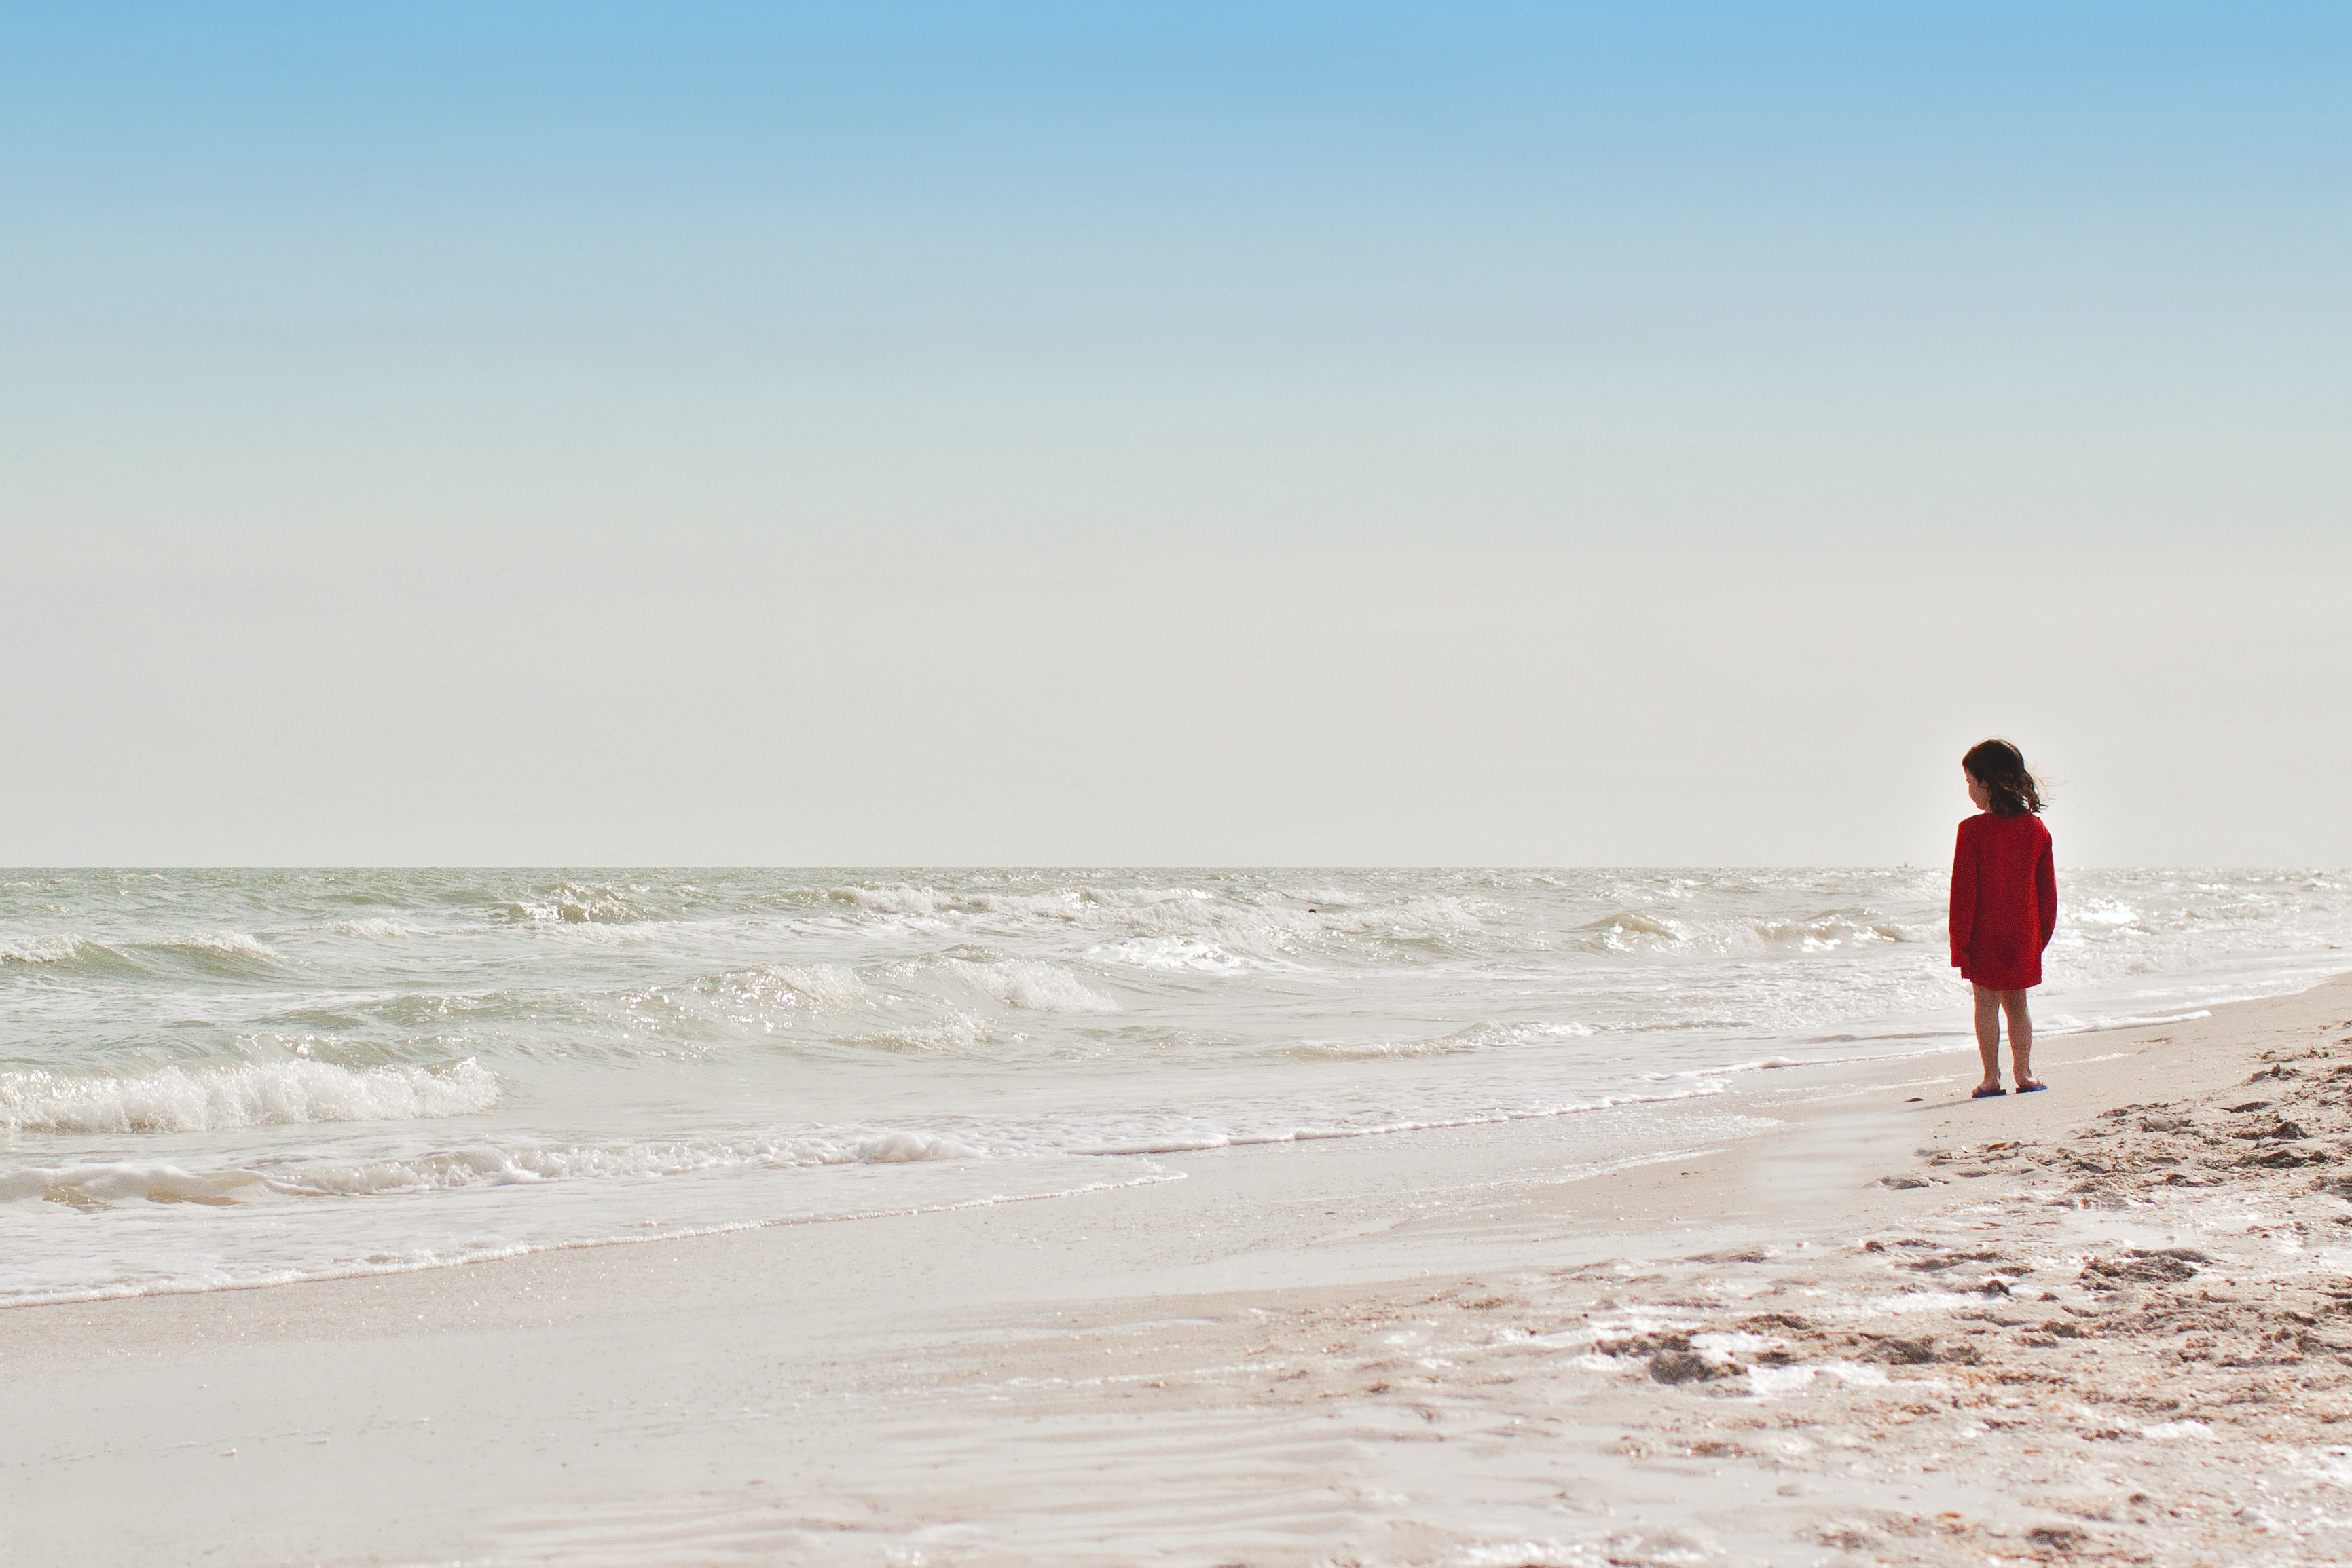 Child standing on the sandy beach looking at the ocean waves at Sanibel